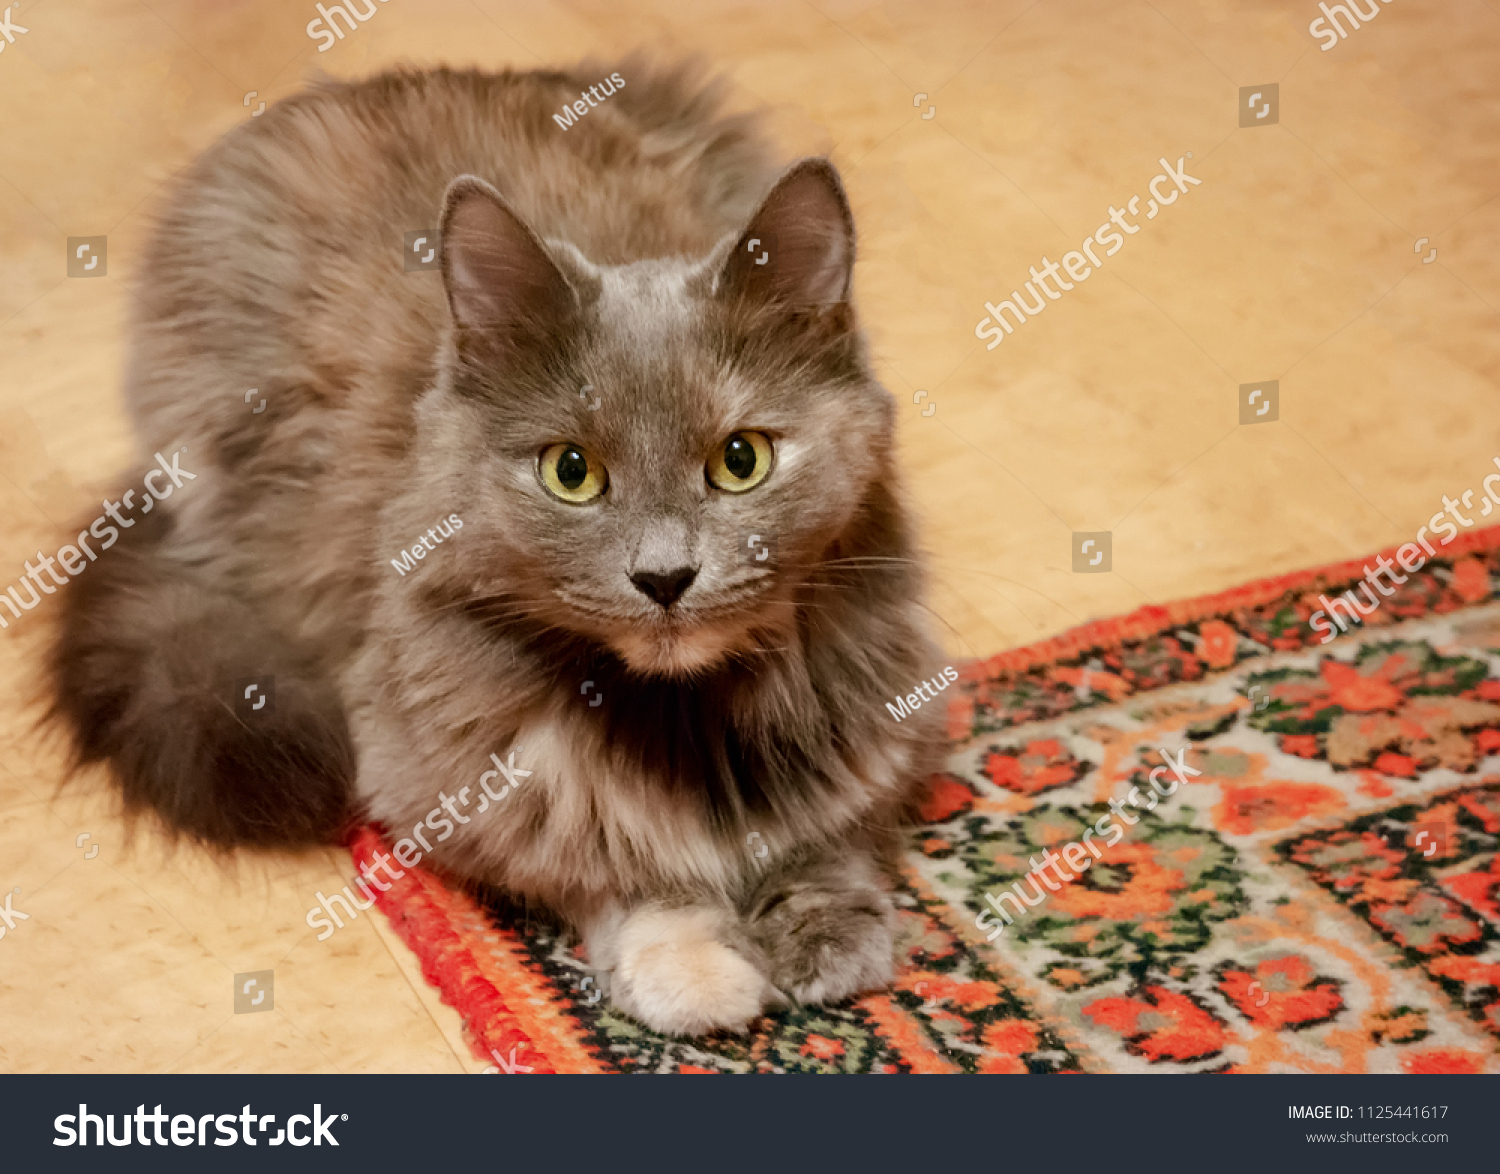 stock-photo-cat-resting-on-the-oriental-